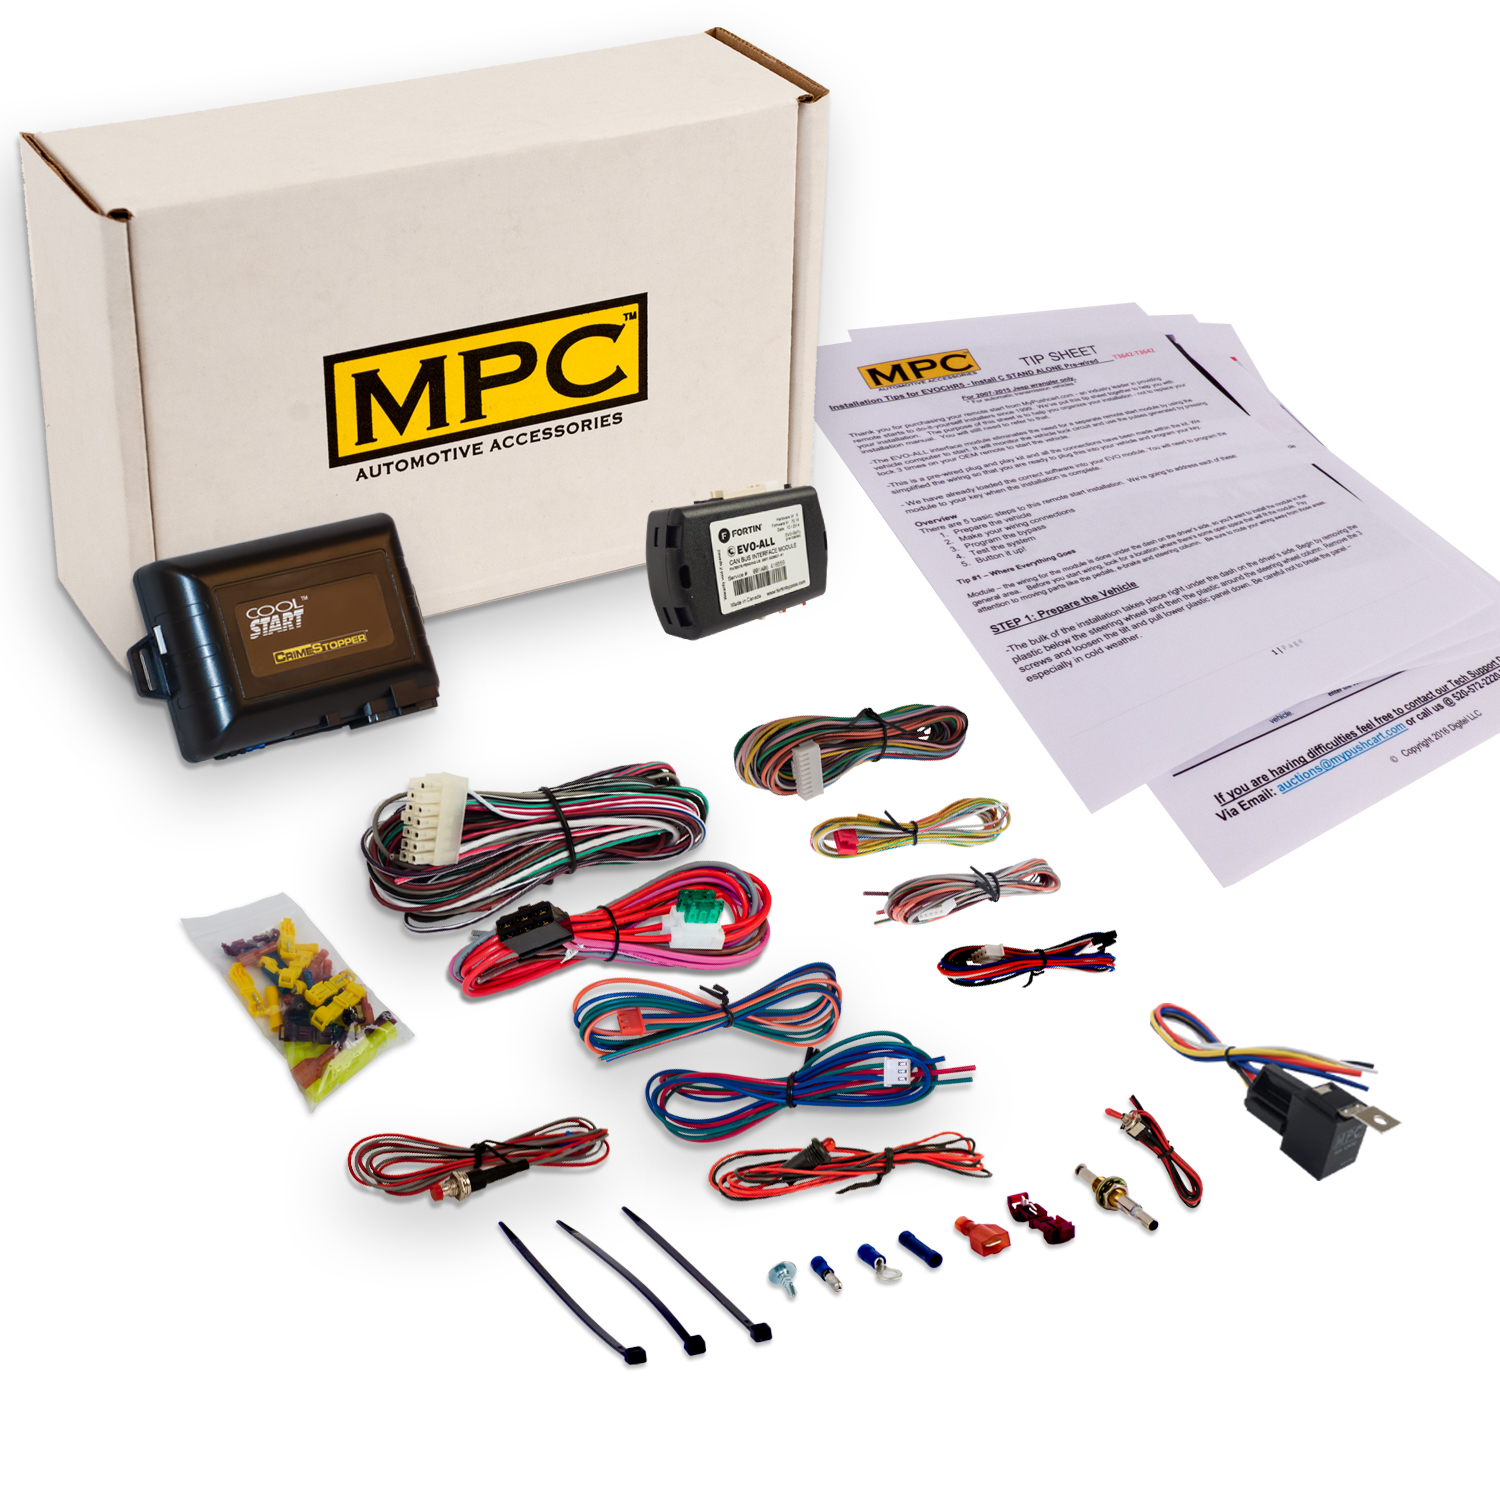 EZ Install Add-on Remote Start Kit for Honda/Acura.  Use Your Factory Remotes!